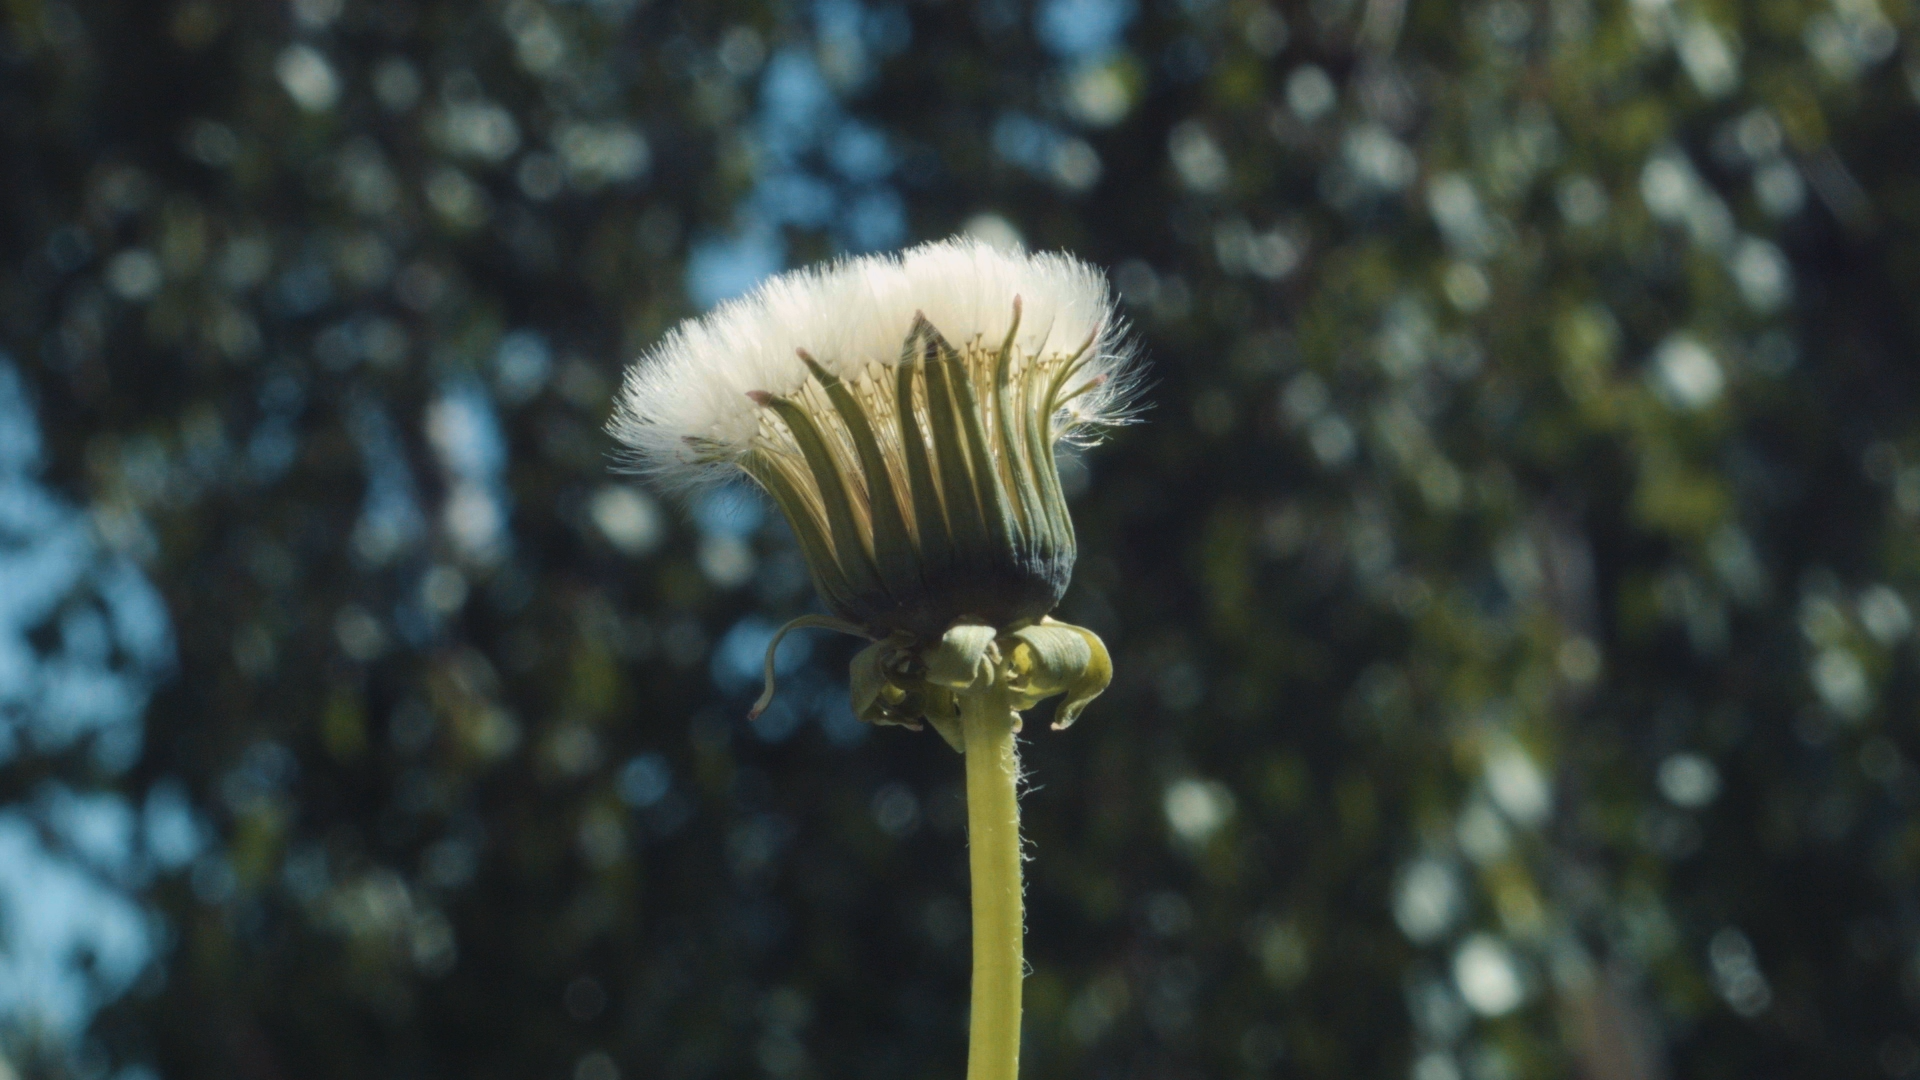 Time Lapse Video Of A Dandelion Flower Blooming Outdoors Blooming Dandelion Flower Lapse Outdoors Time Vi In 2020 Dandelion Flower Macro Flower Flower Aesthetic